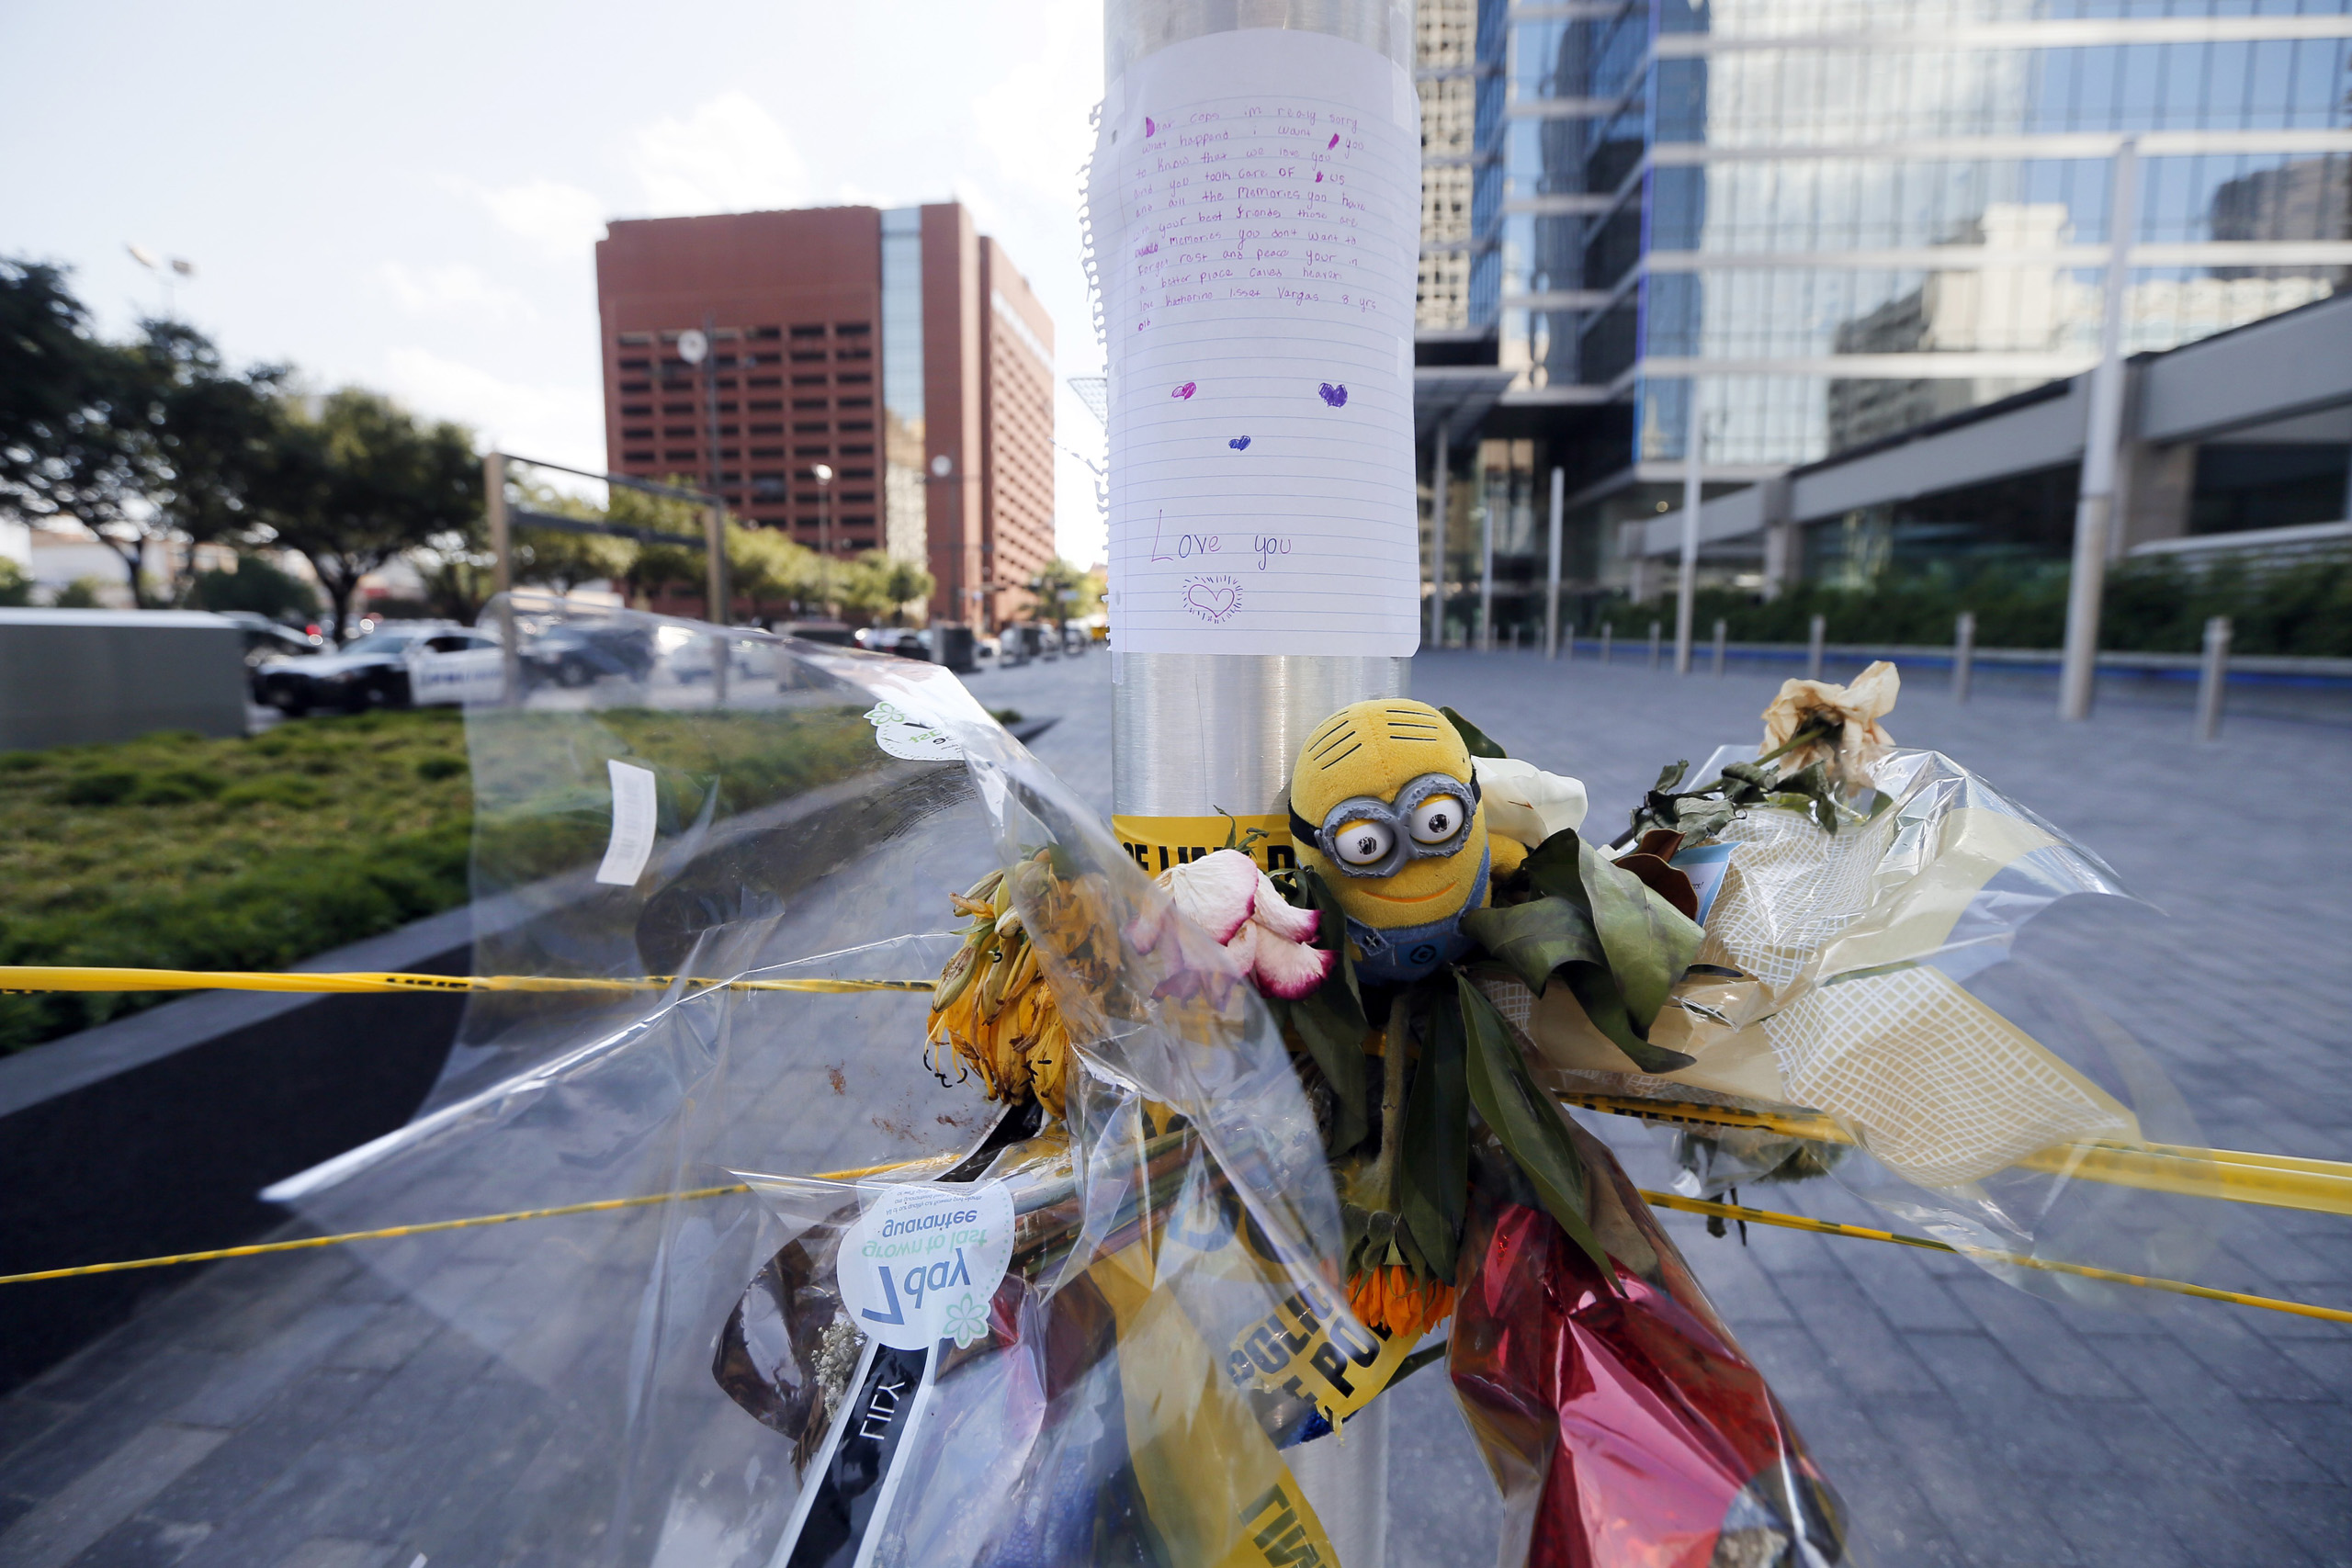 A letter from a child to Dallas police officers sits atop flowers and other items left at a makeshift memorial by the crime scene of Thursday night's shooting in Dallas on July 10, 2016.